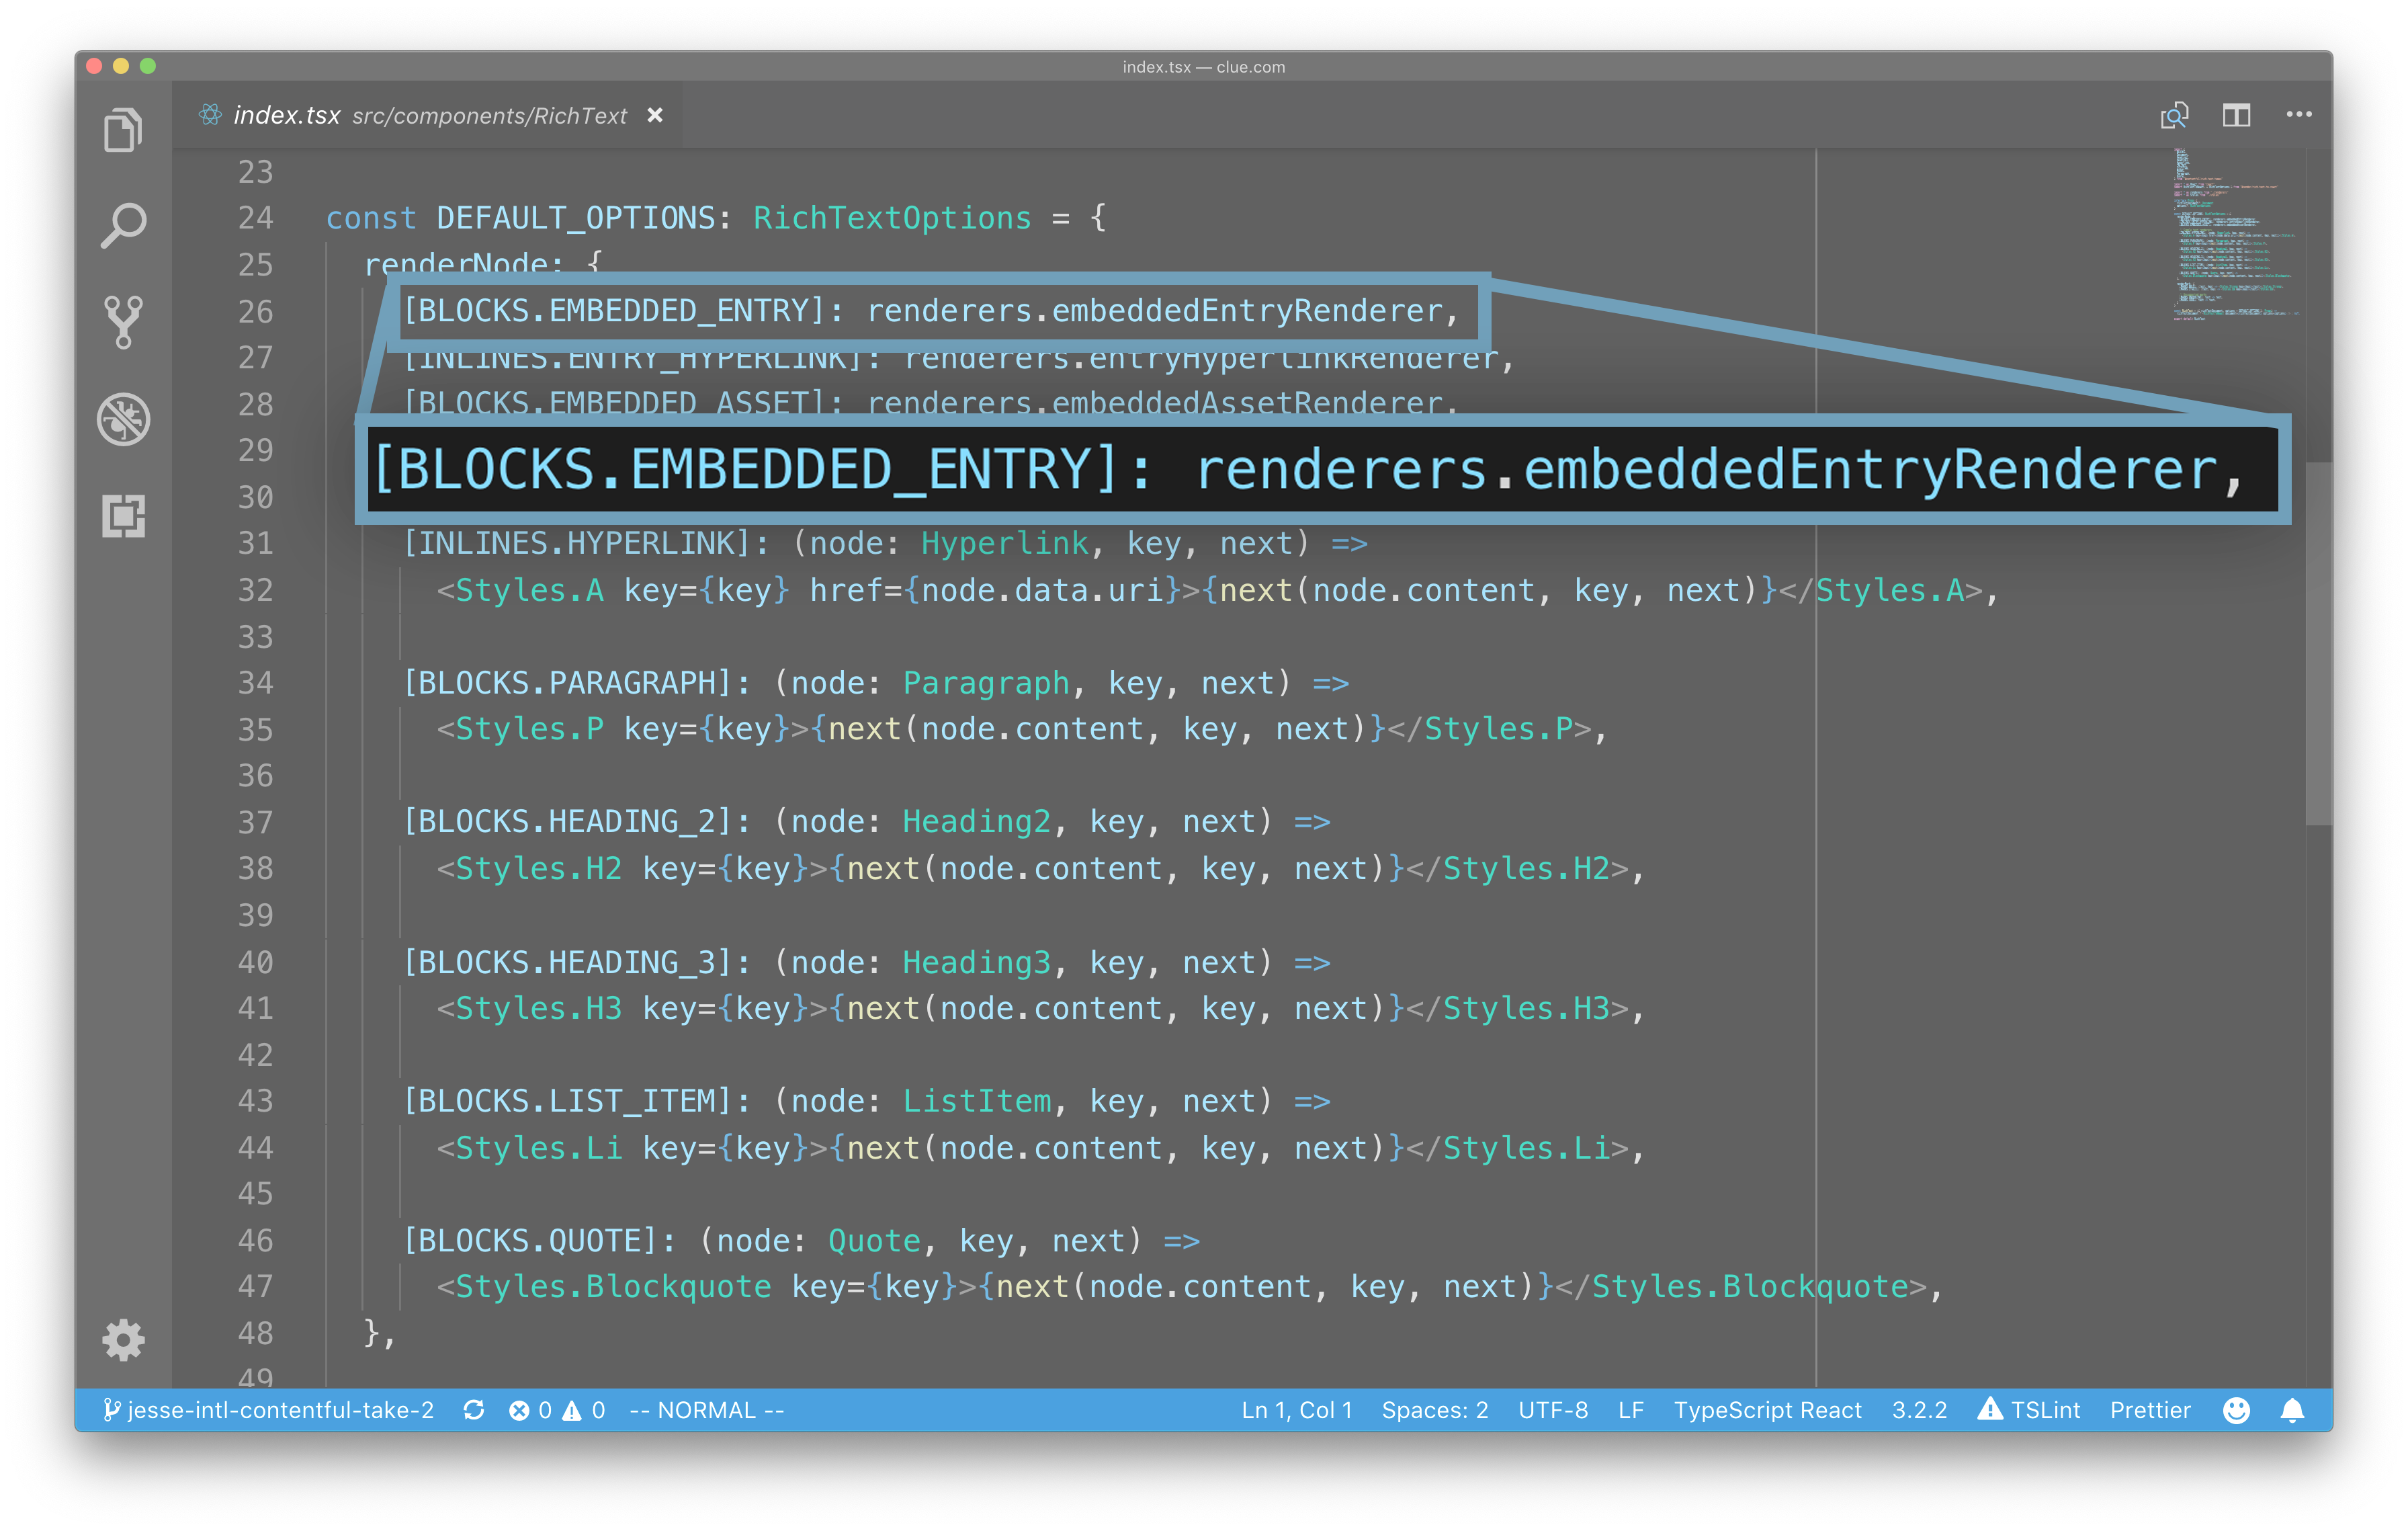 vscode-rich-text-renderers-embedded-entry